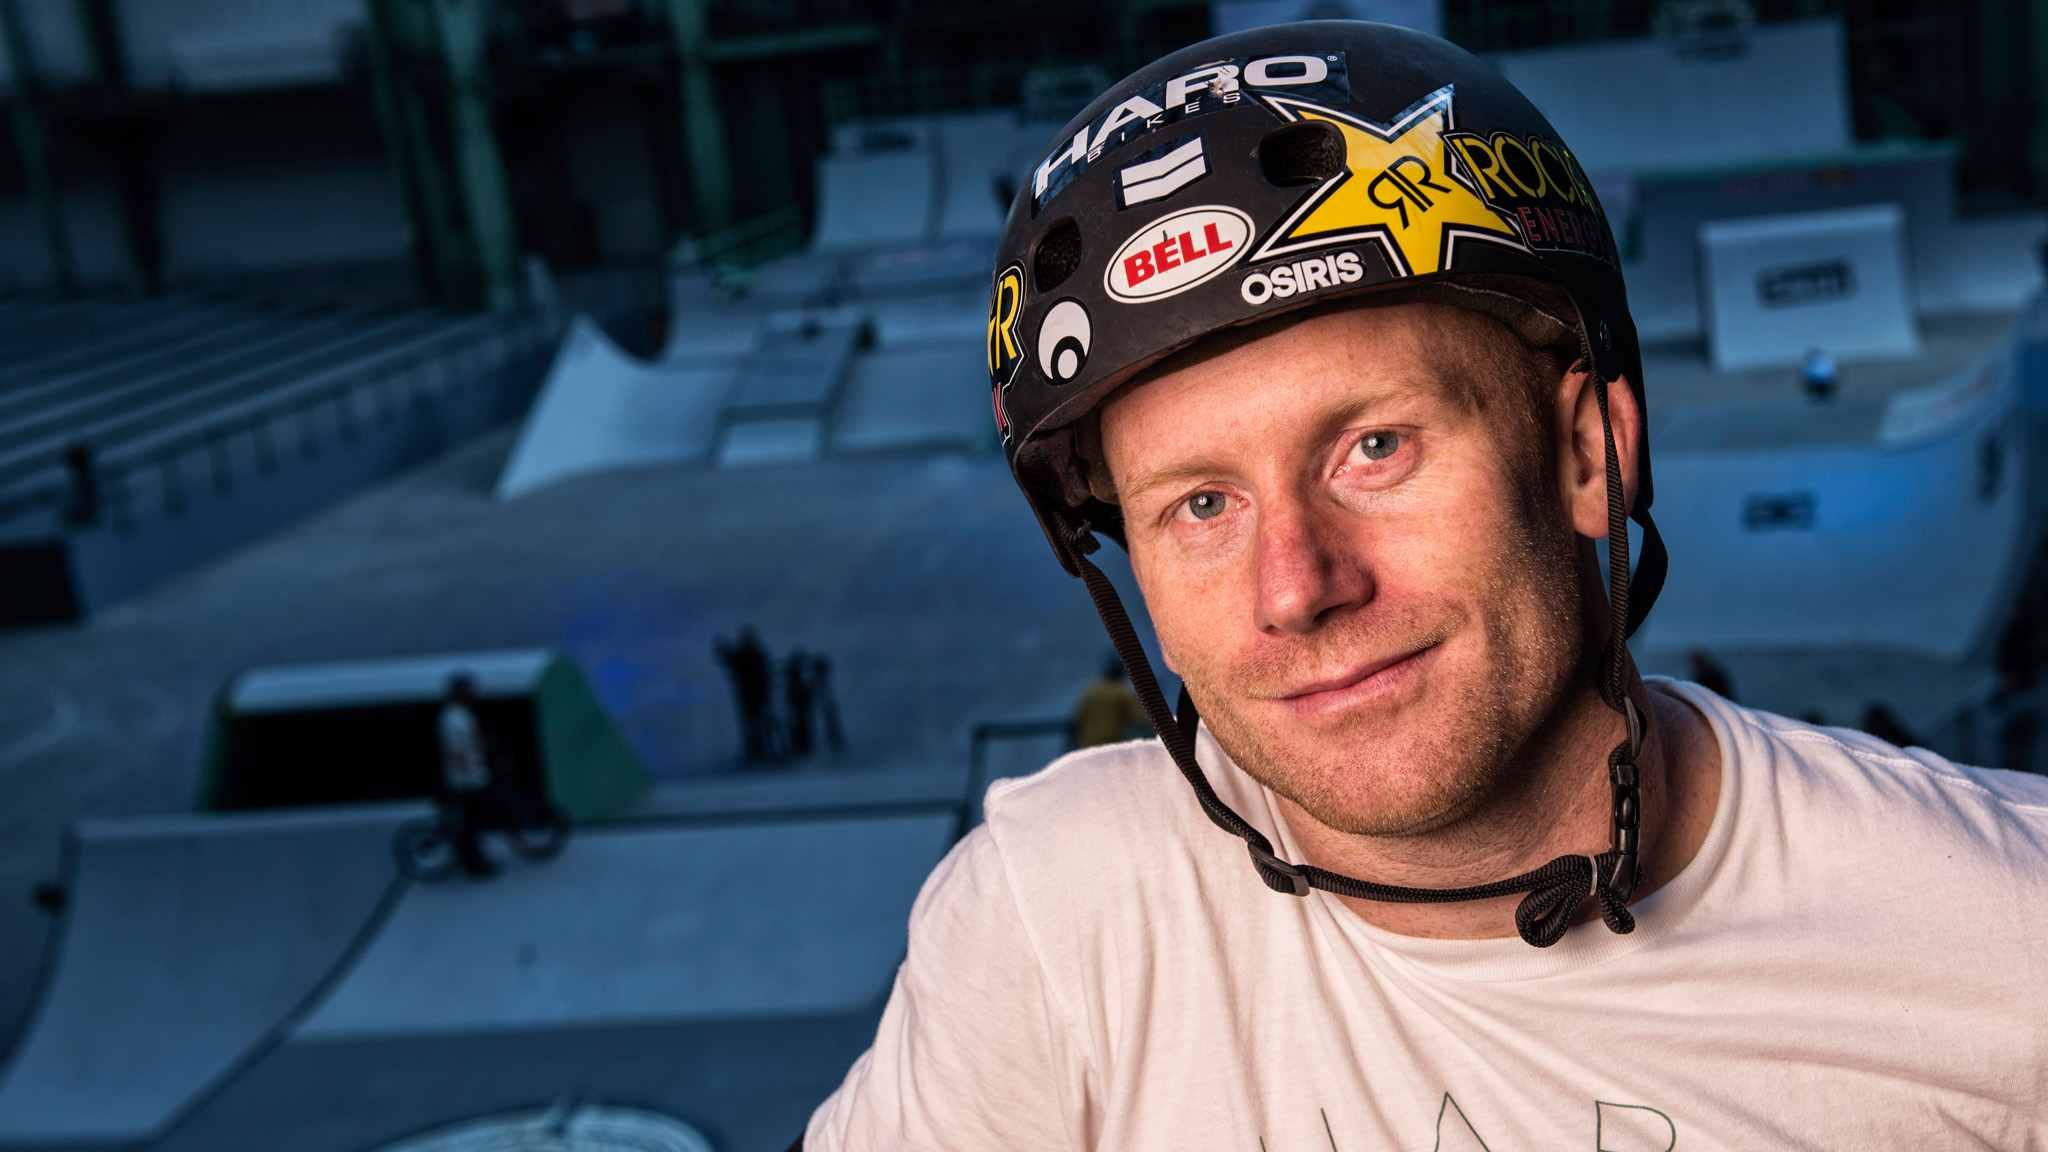 A decade removed from sweeping the Park and Dirt titles at the 2003 X Games, Ryan Nyquist is a legitimate contender in both events at X Games Foz.